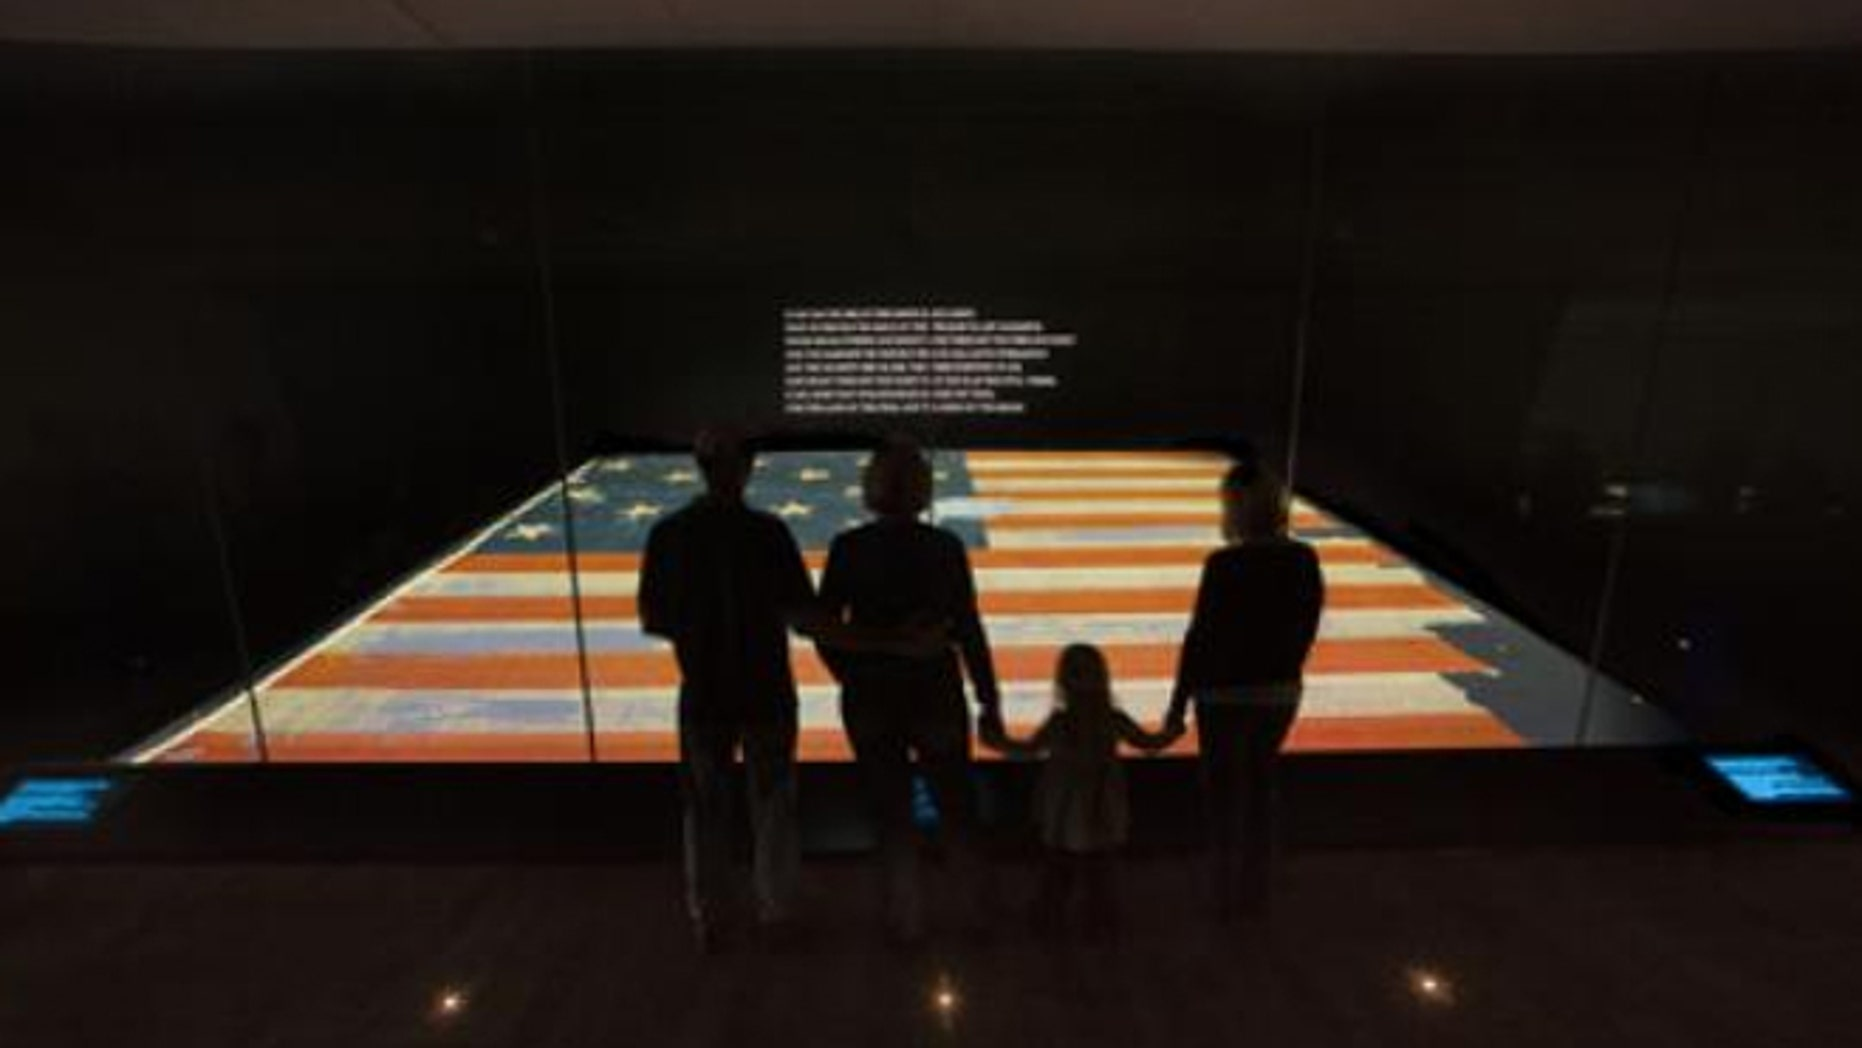 The National Museum of American History has the flag that inspired the national anthem on display.